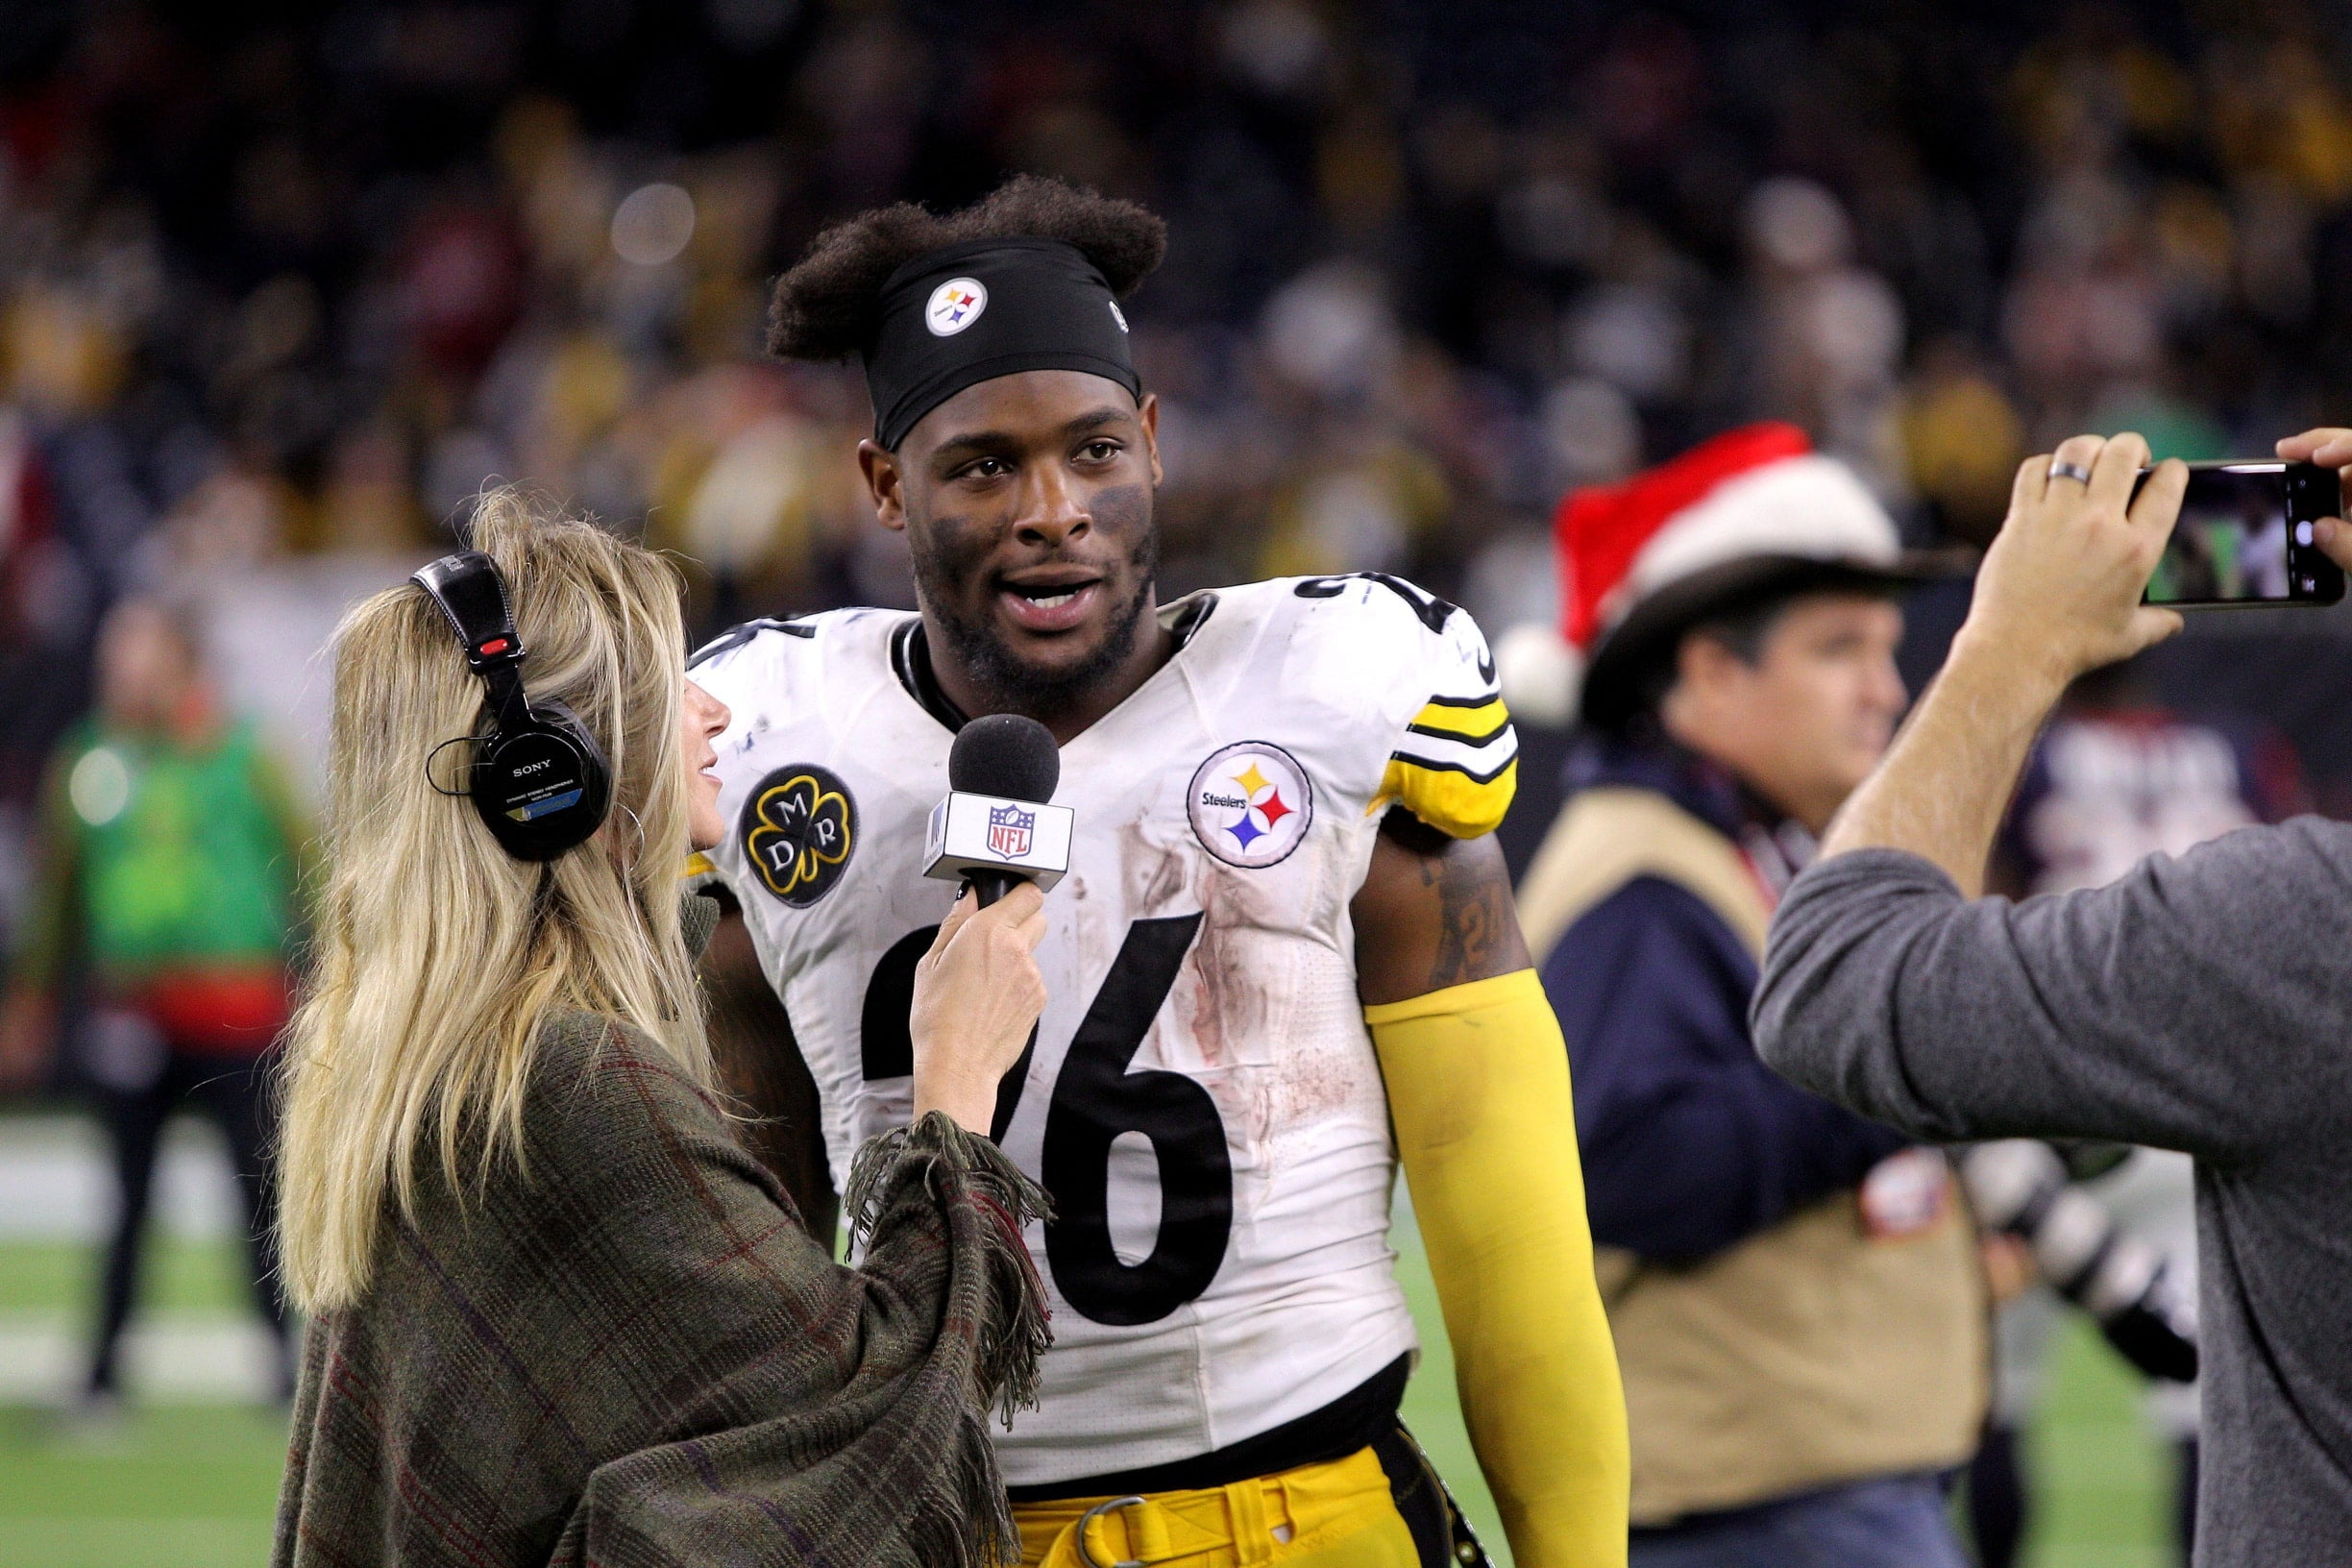 Le'Veon Bell Teases Interest In Playing For 1 NFL Team